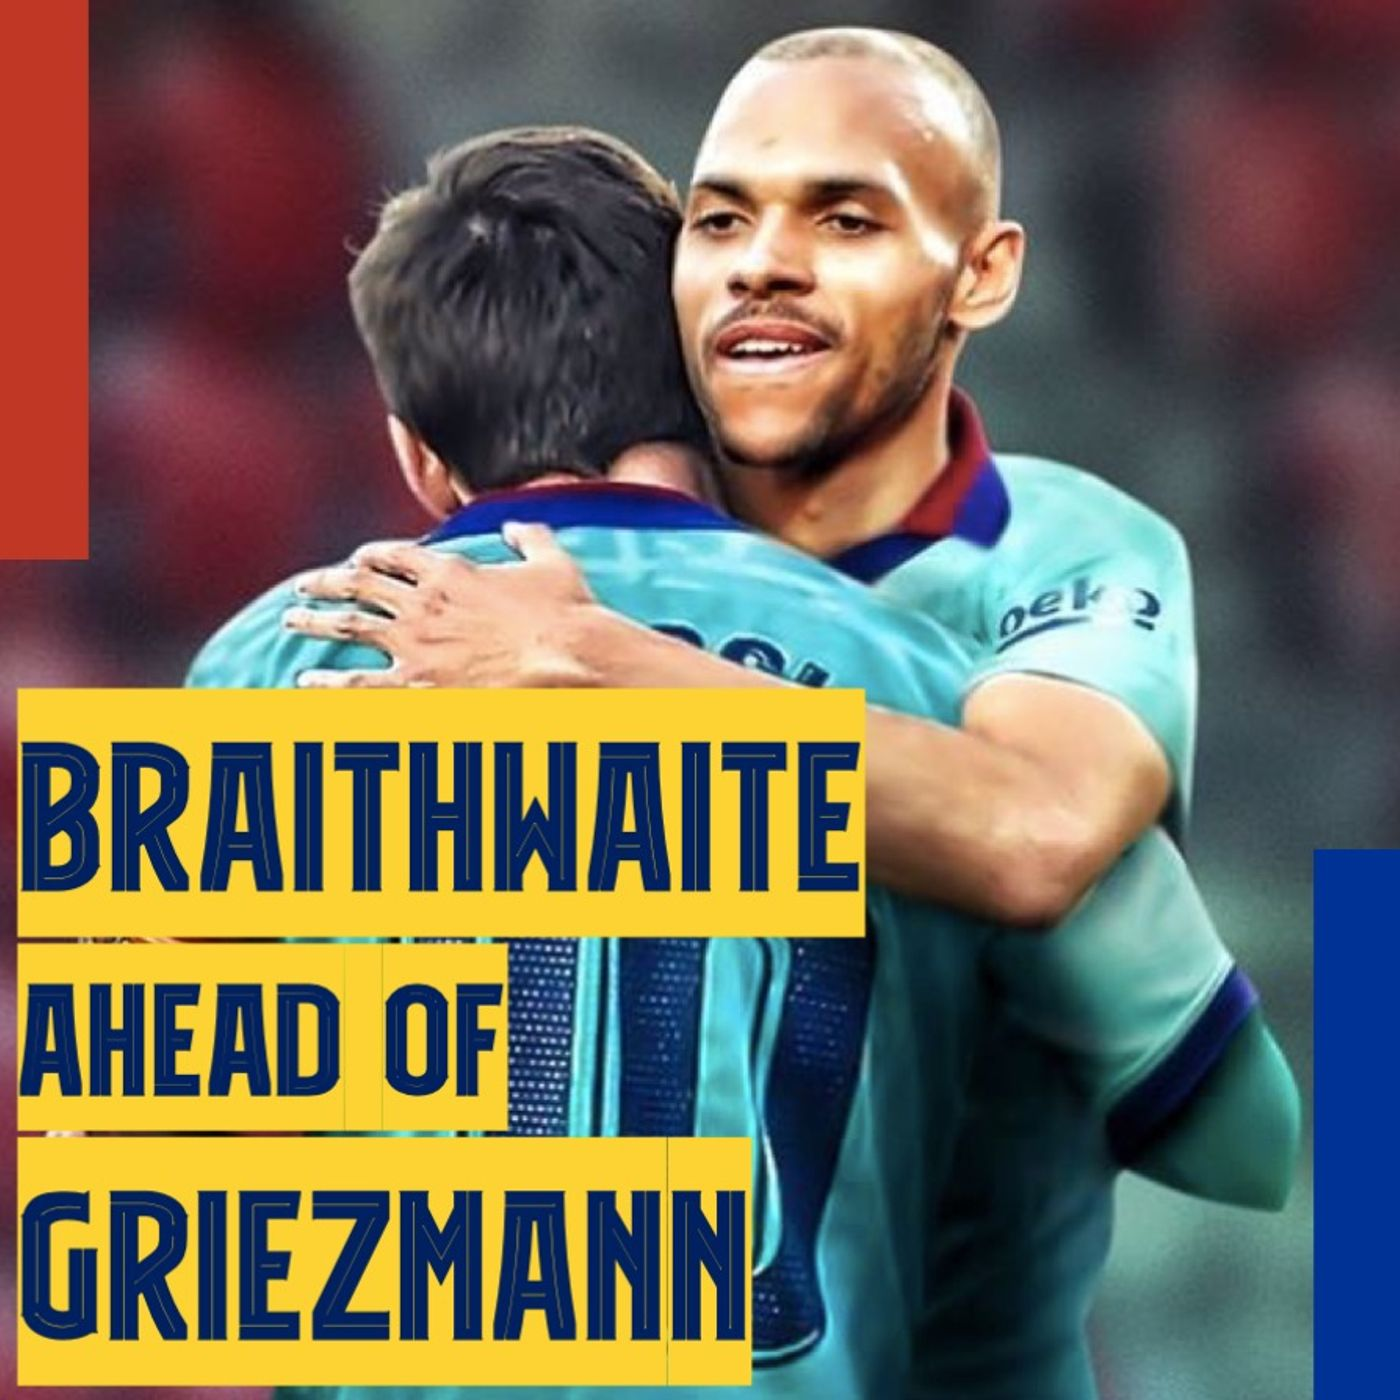 Braithwaite ahead of Griezmann, Wildcard Vidal, and Dominant Messi